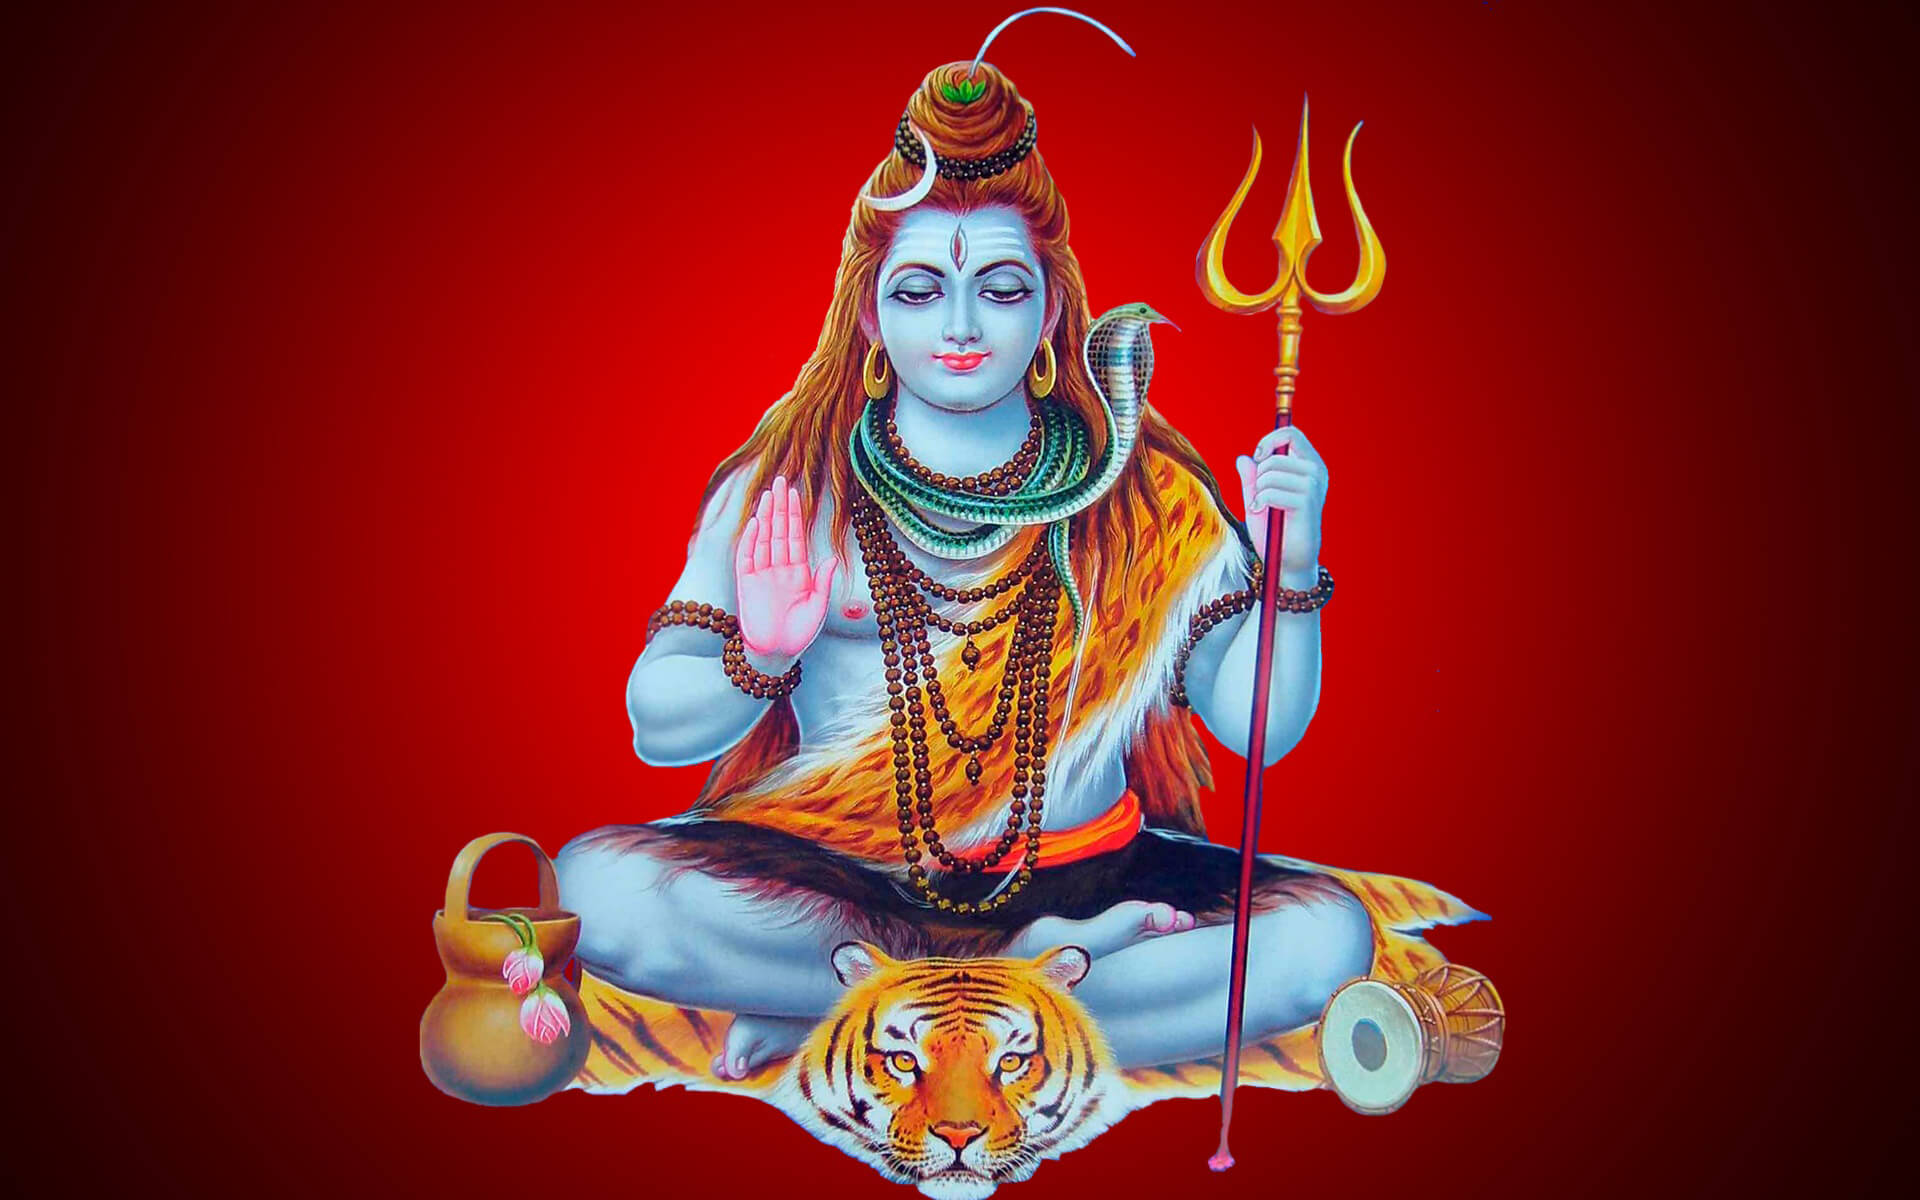 Lord Shiva Red Background - HD Wallpaper